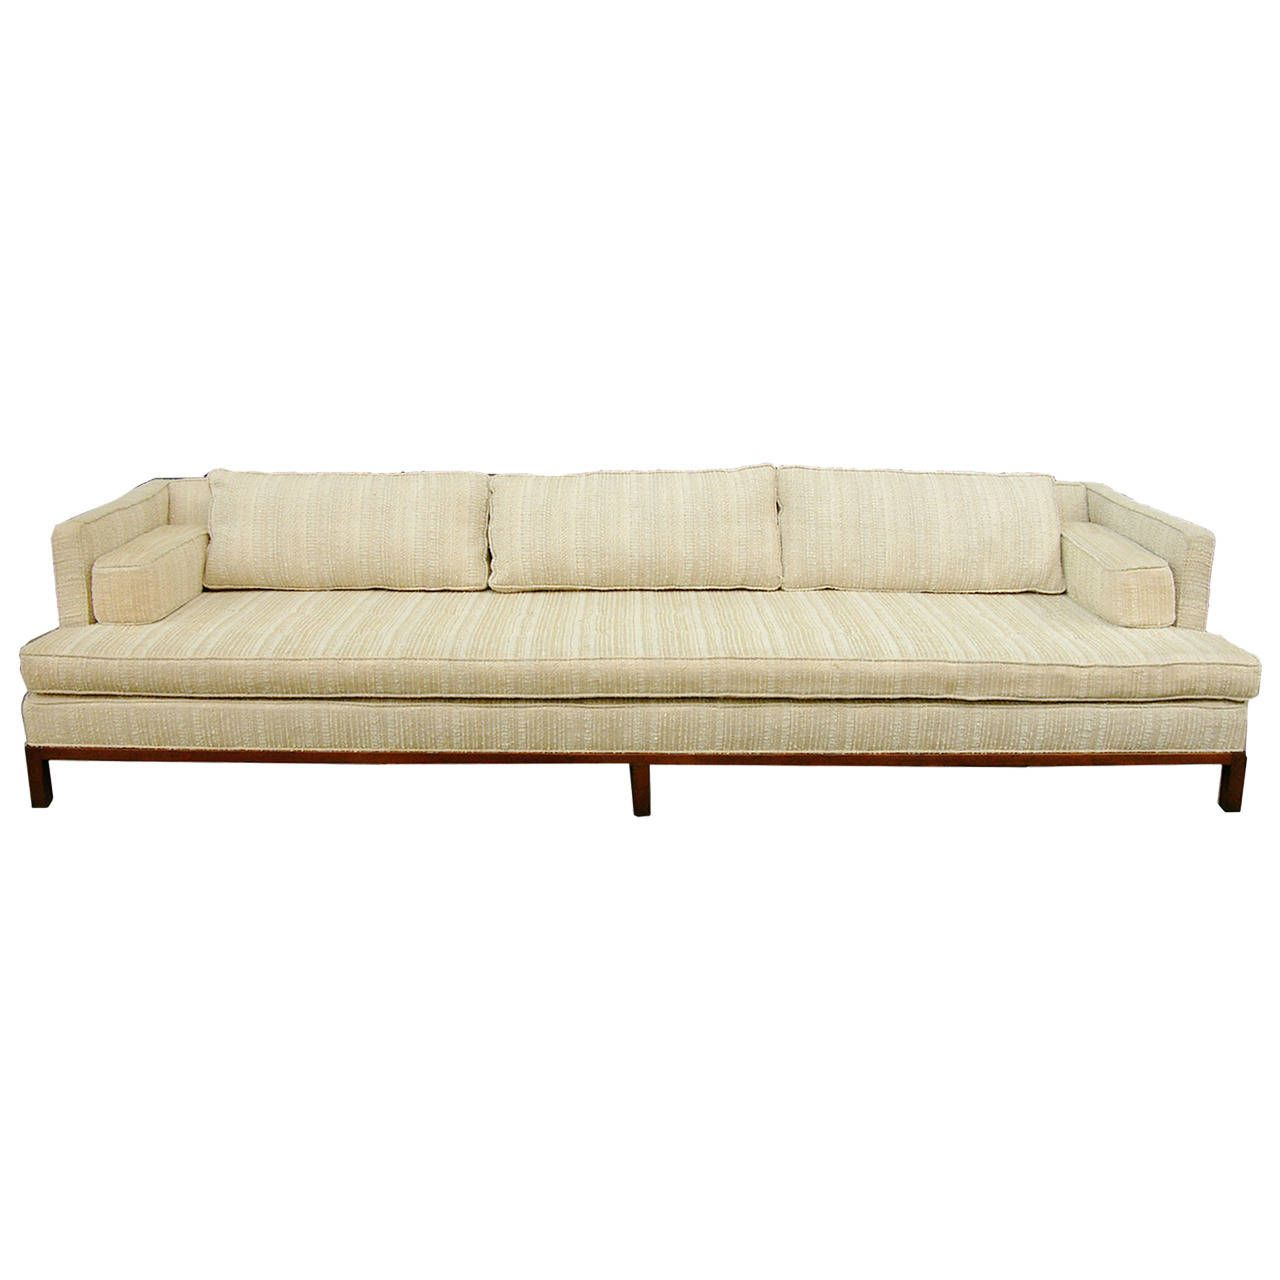 Nine Foot Harvey Probber Shelter Sofa | sofas and daybeds ...